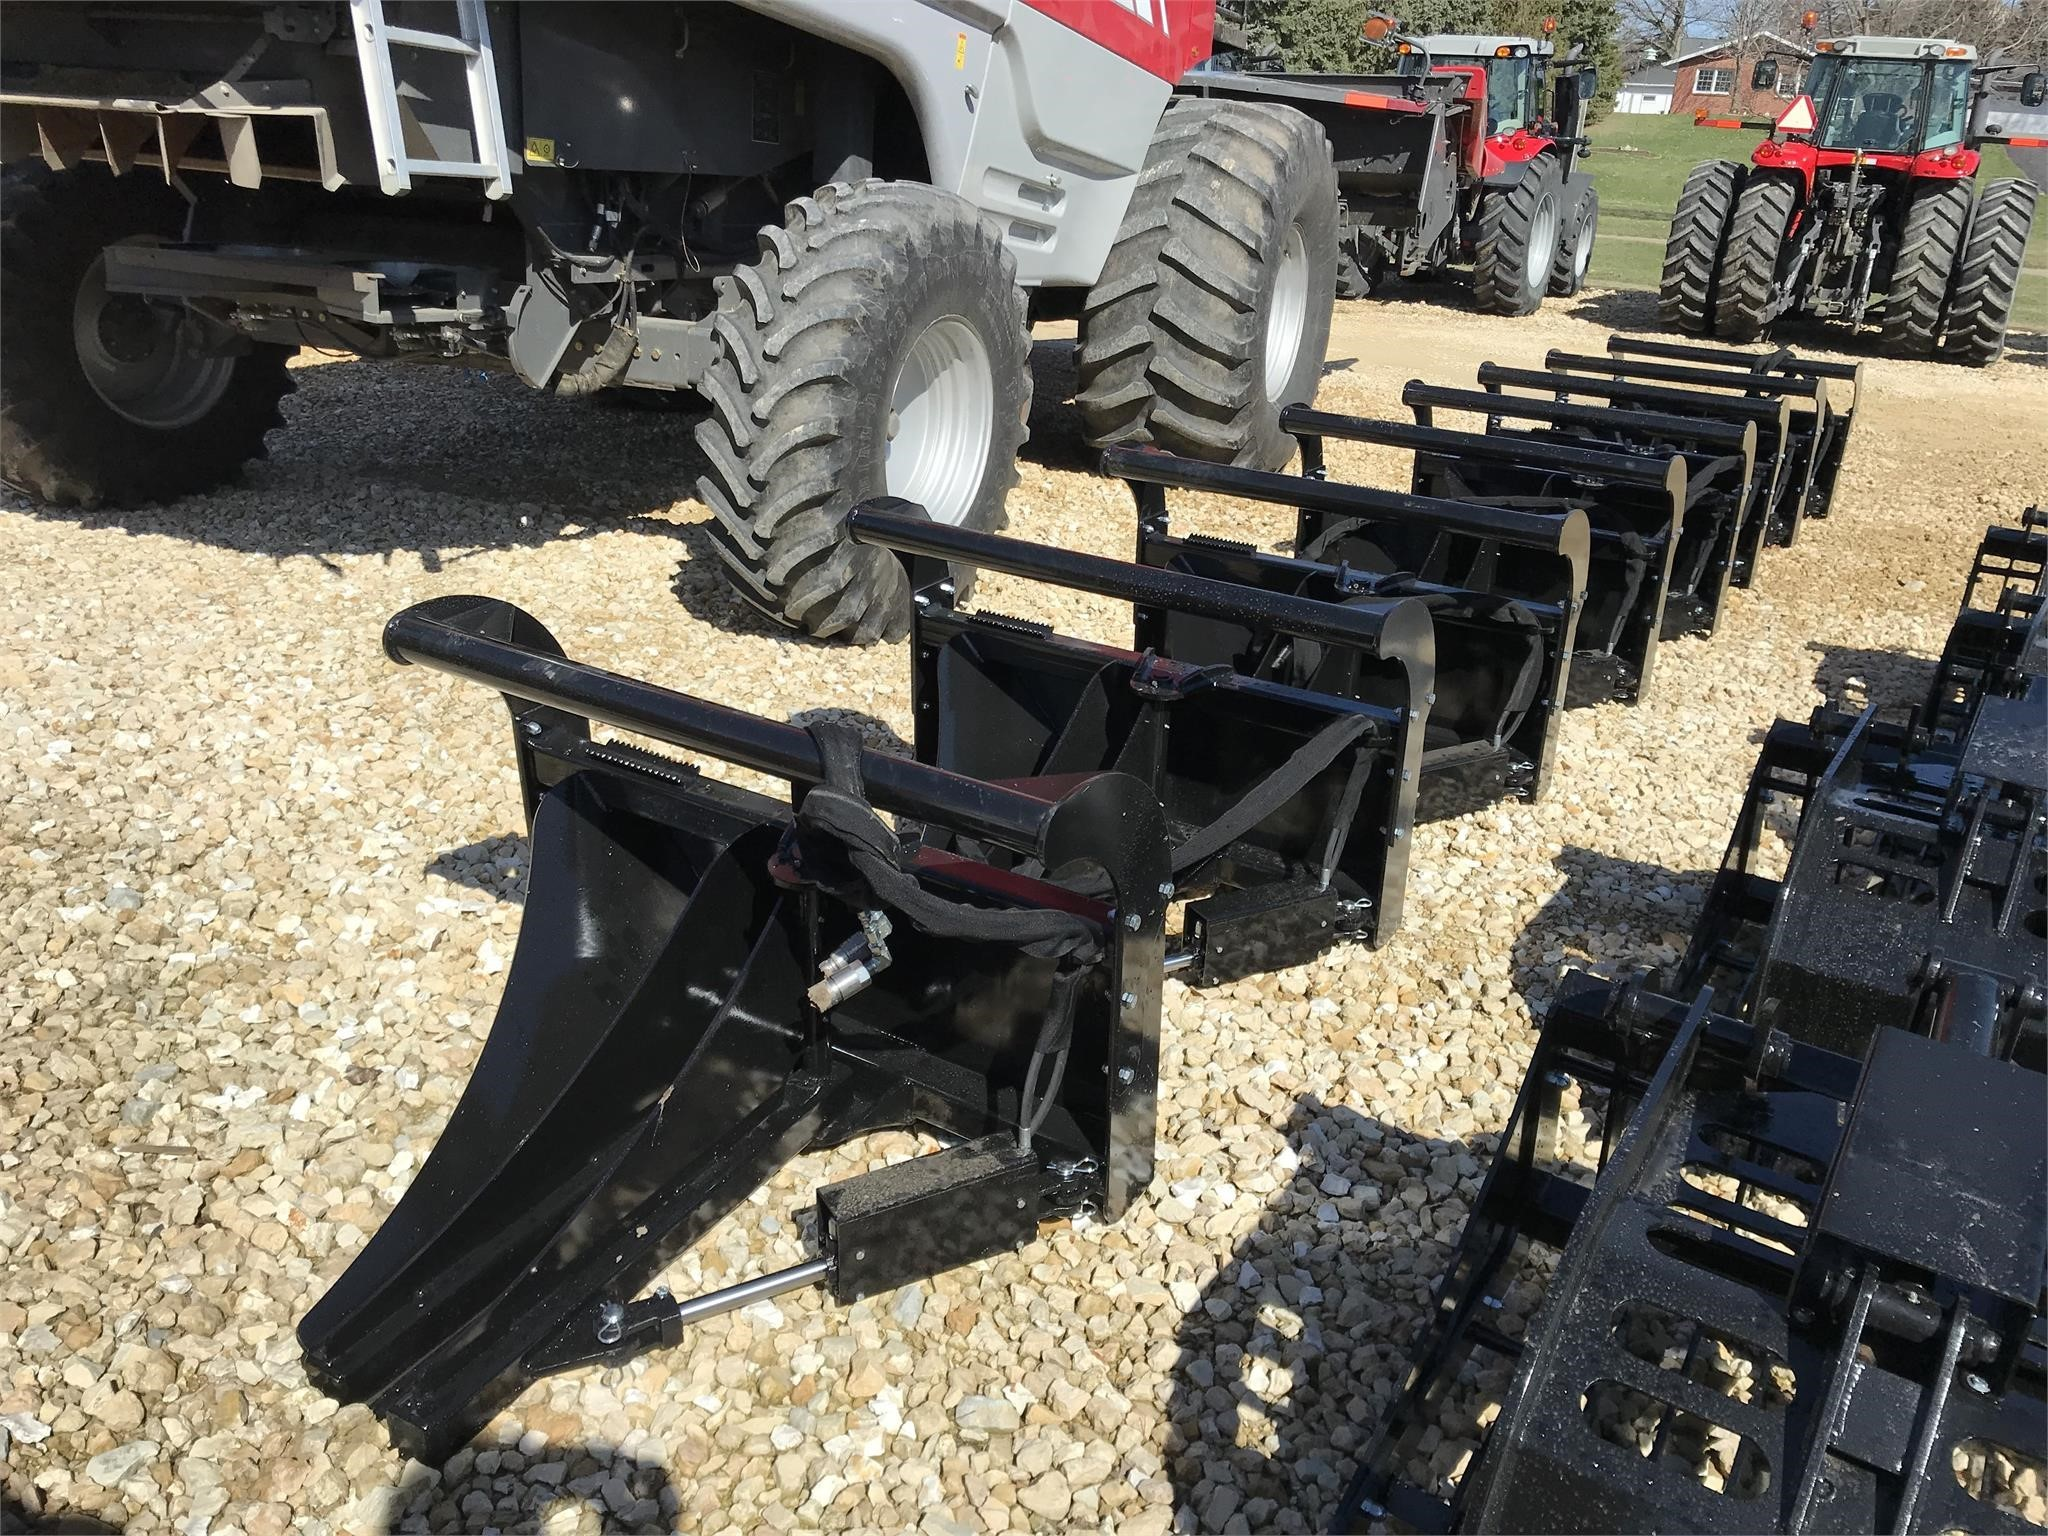 2018 PRIME Tree Puller Loader and Skid Steer Attachment